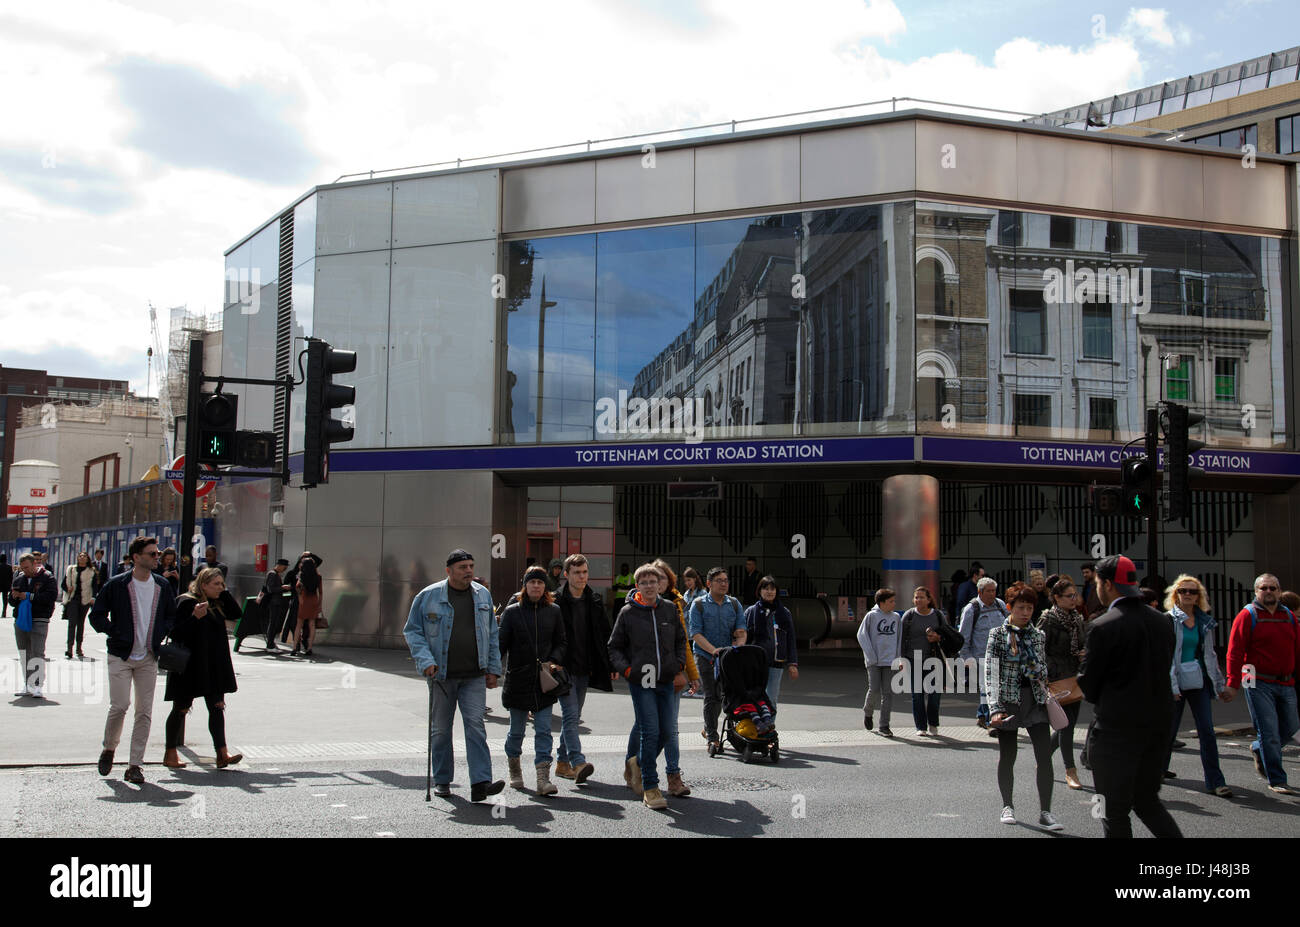 Tottenham Court Road Tube Station on Corner of Oxford Street and Charing Cross RD - London UK - Stock Image